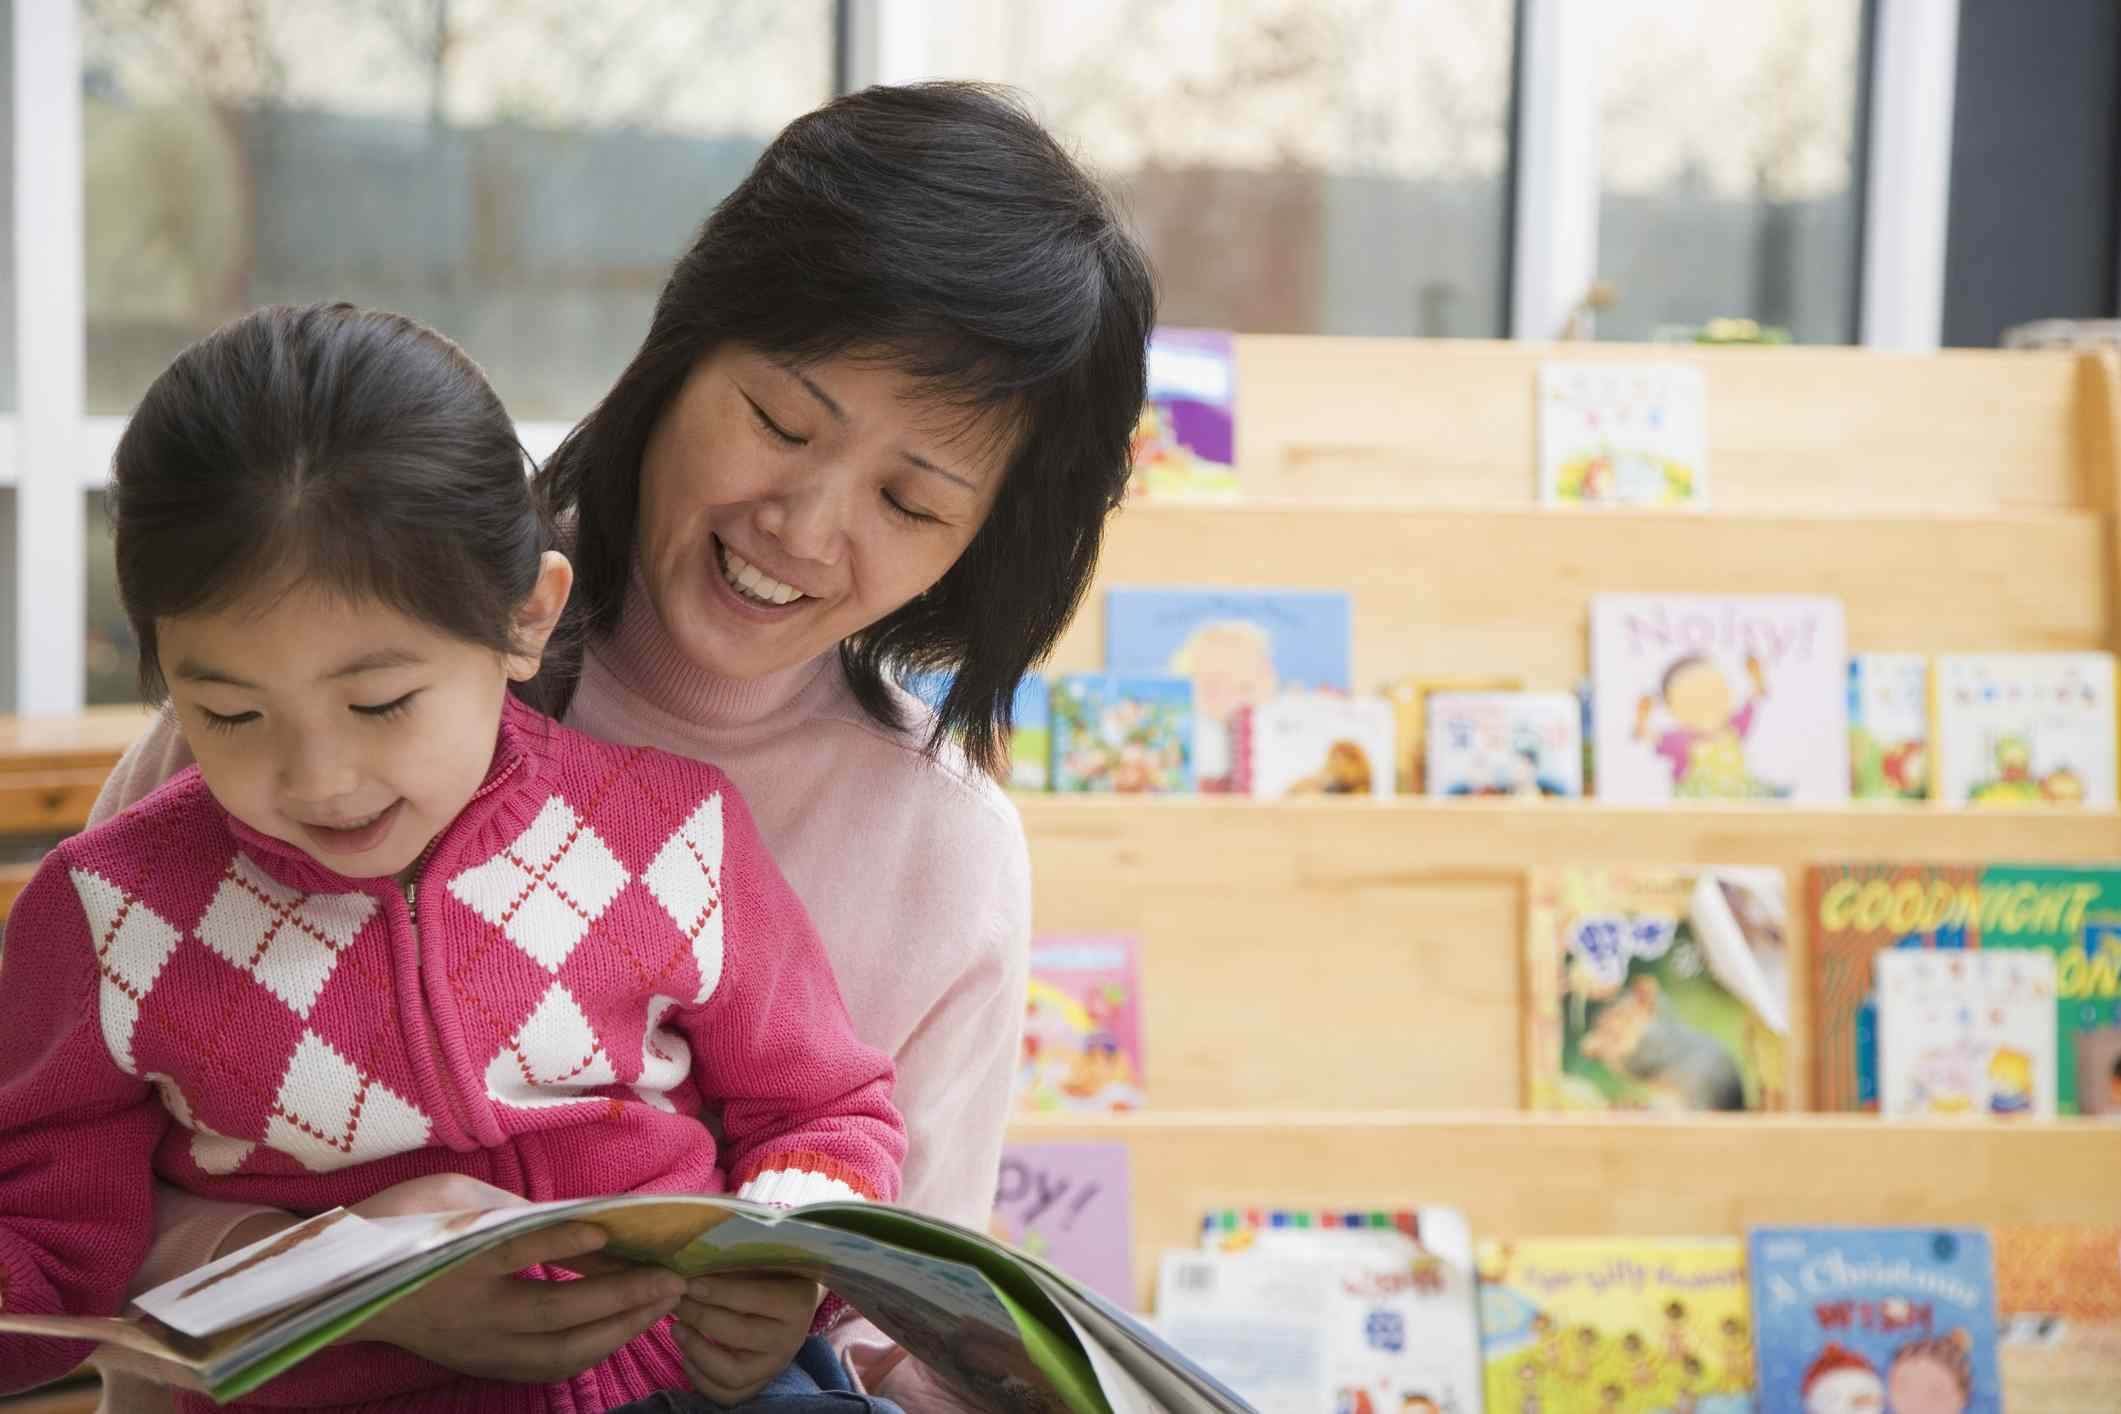 Girl (4-5 years old) sitting on teacher's lap reading a book